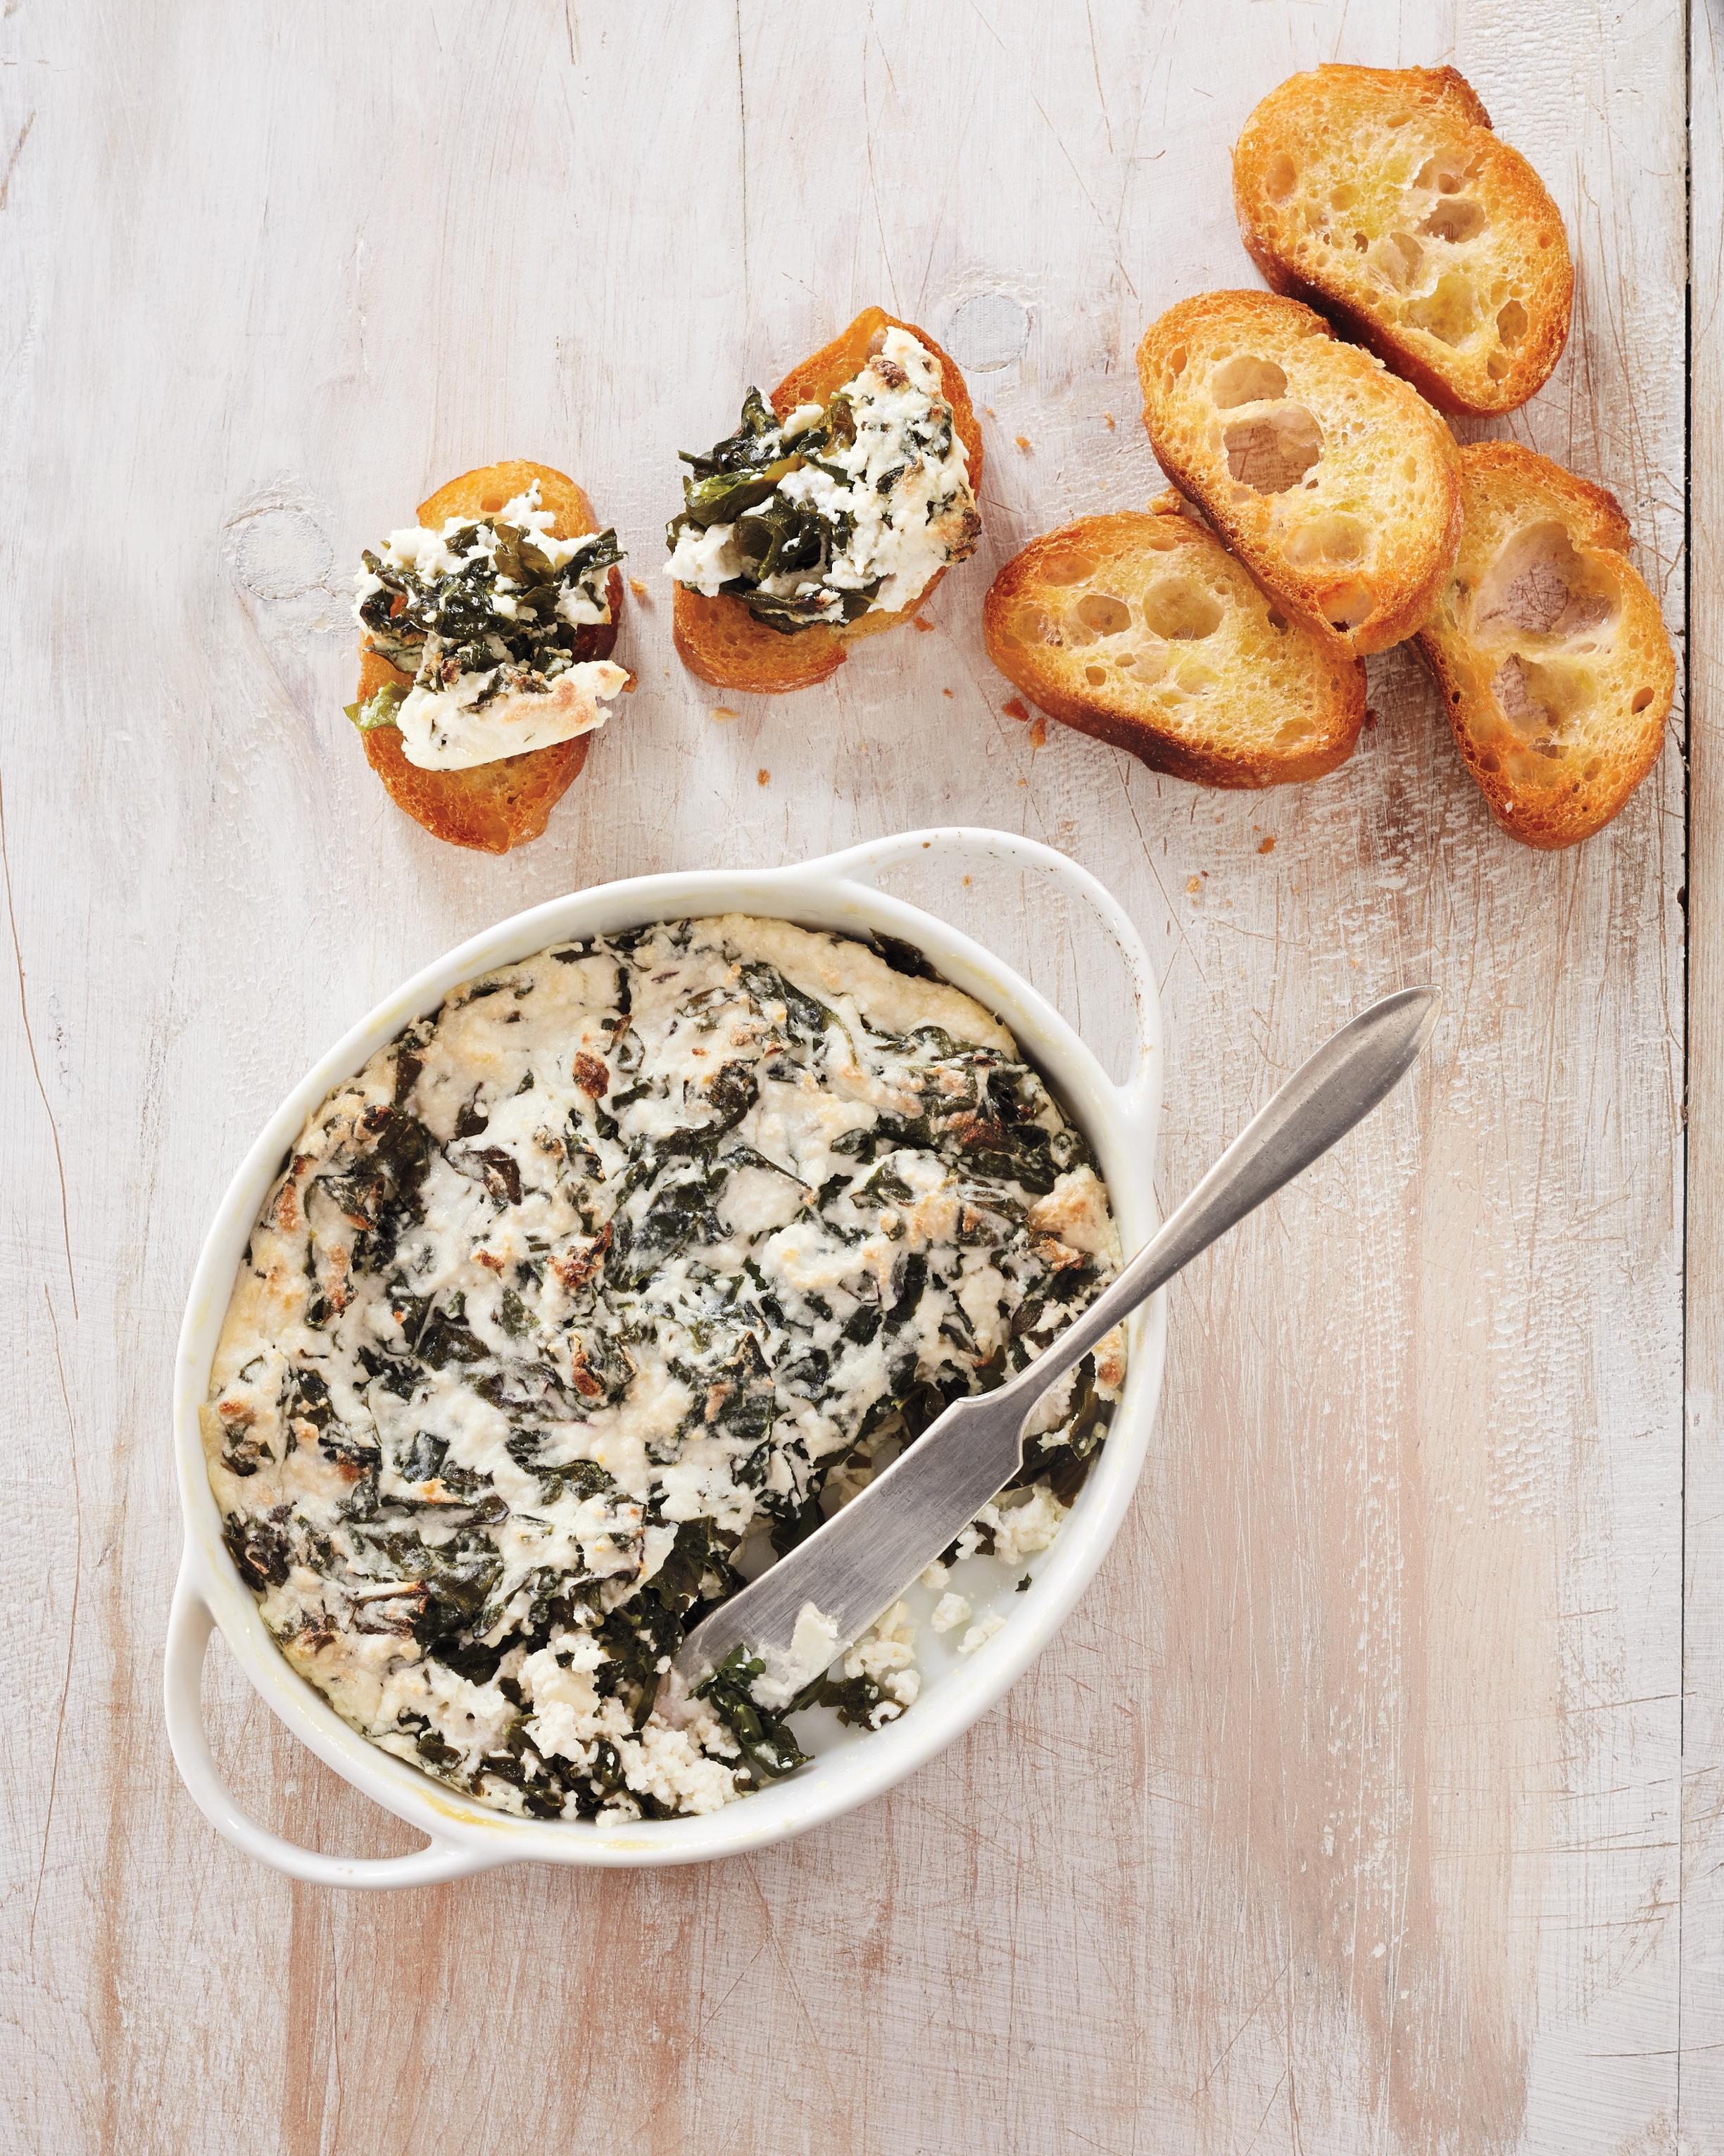 baked-ricotta-and-greens-277-main-d111399.jpg